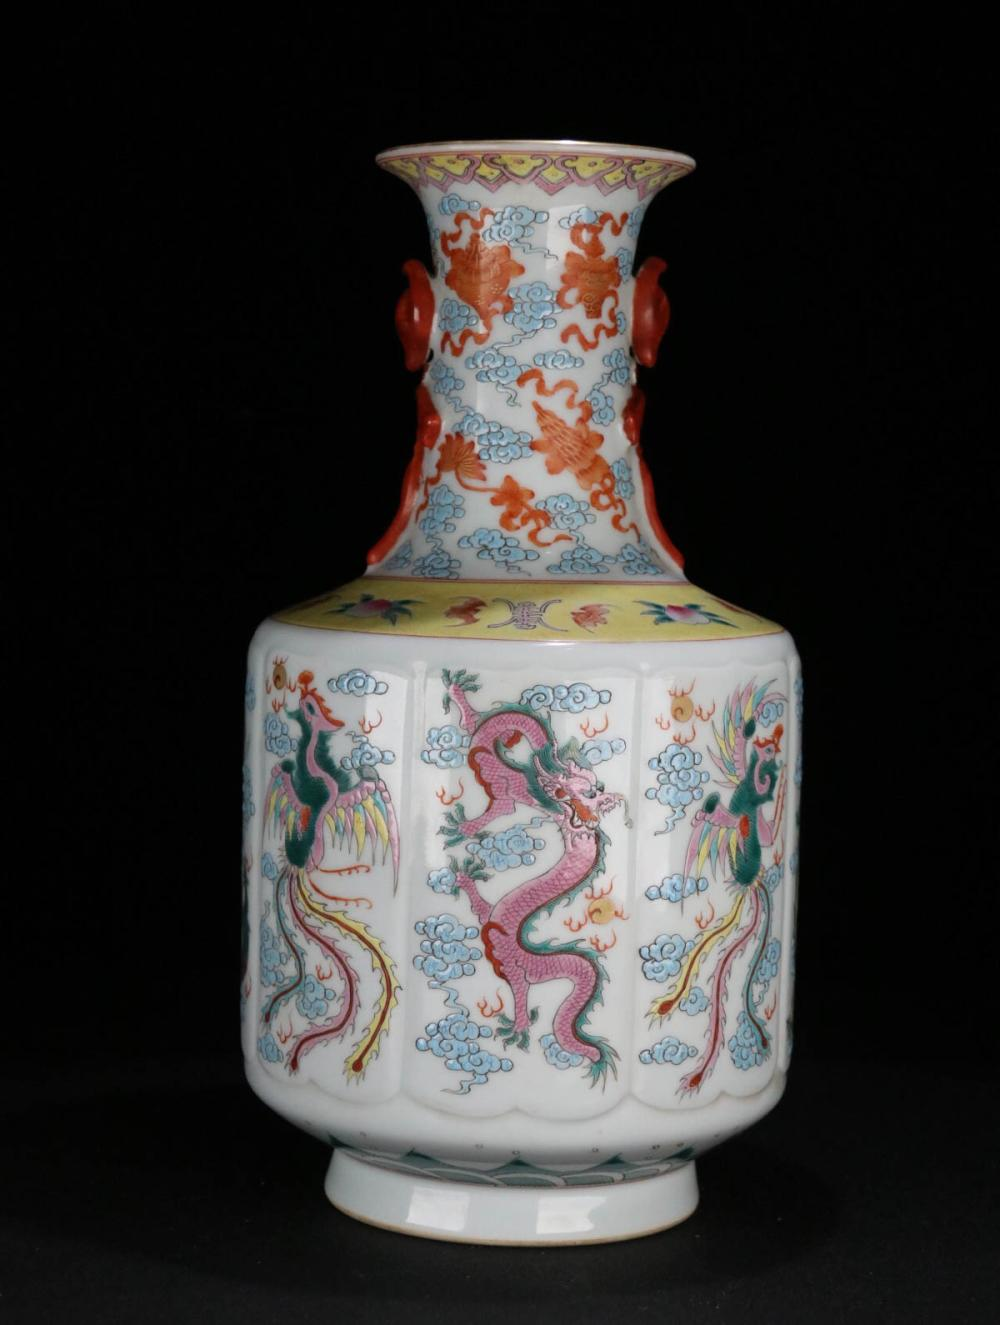 A WHITE GLAZE DRAGON PHOENIX PAINTED VASE